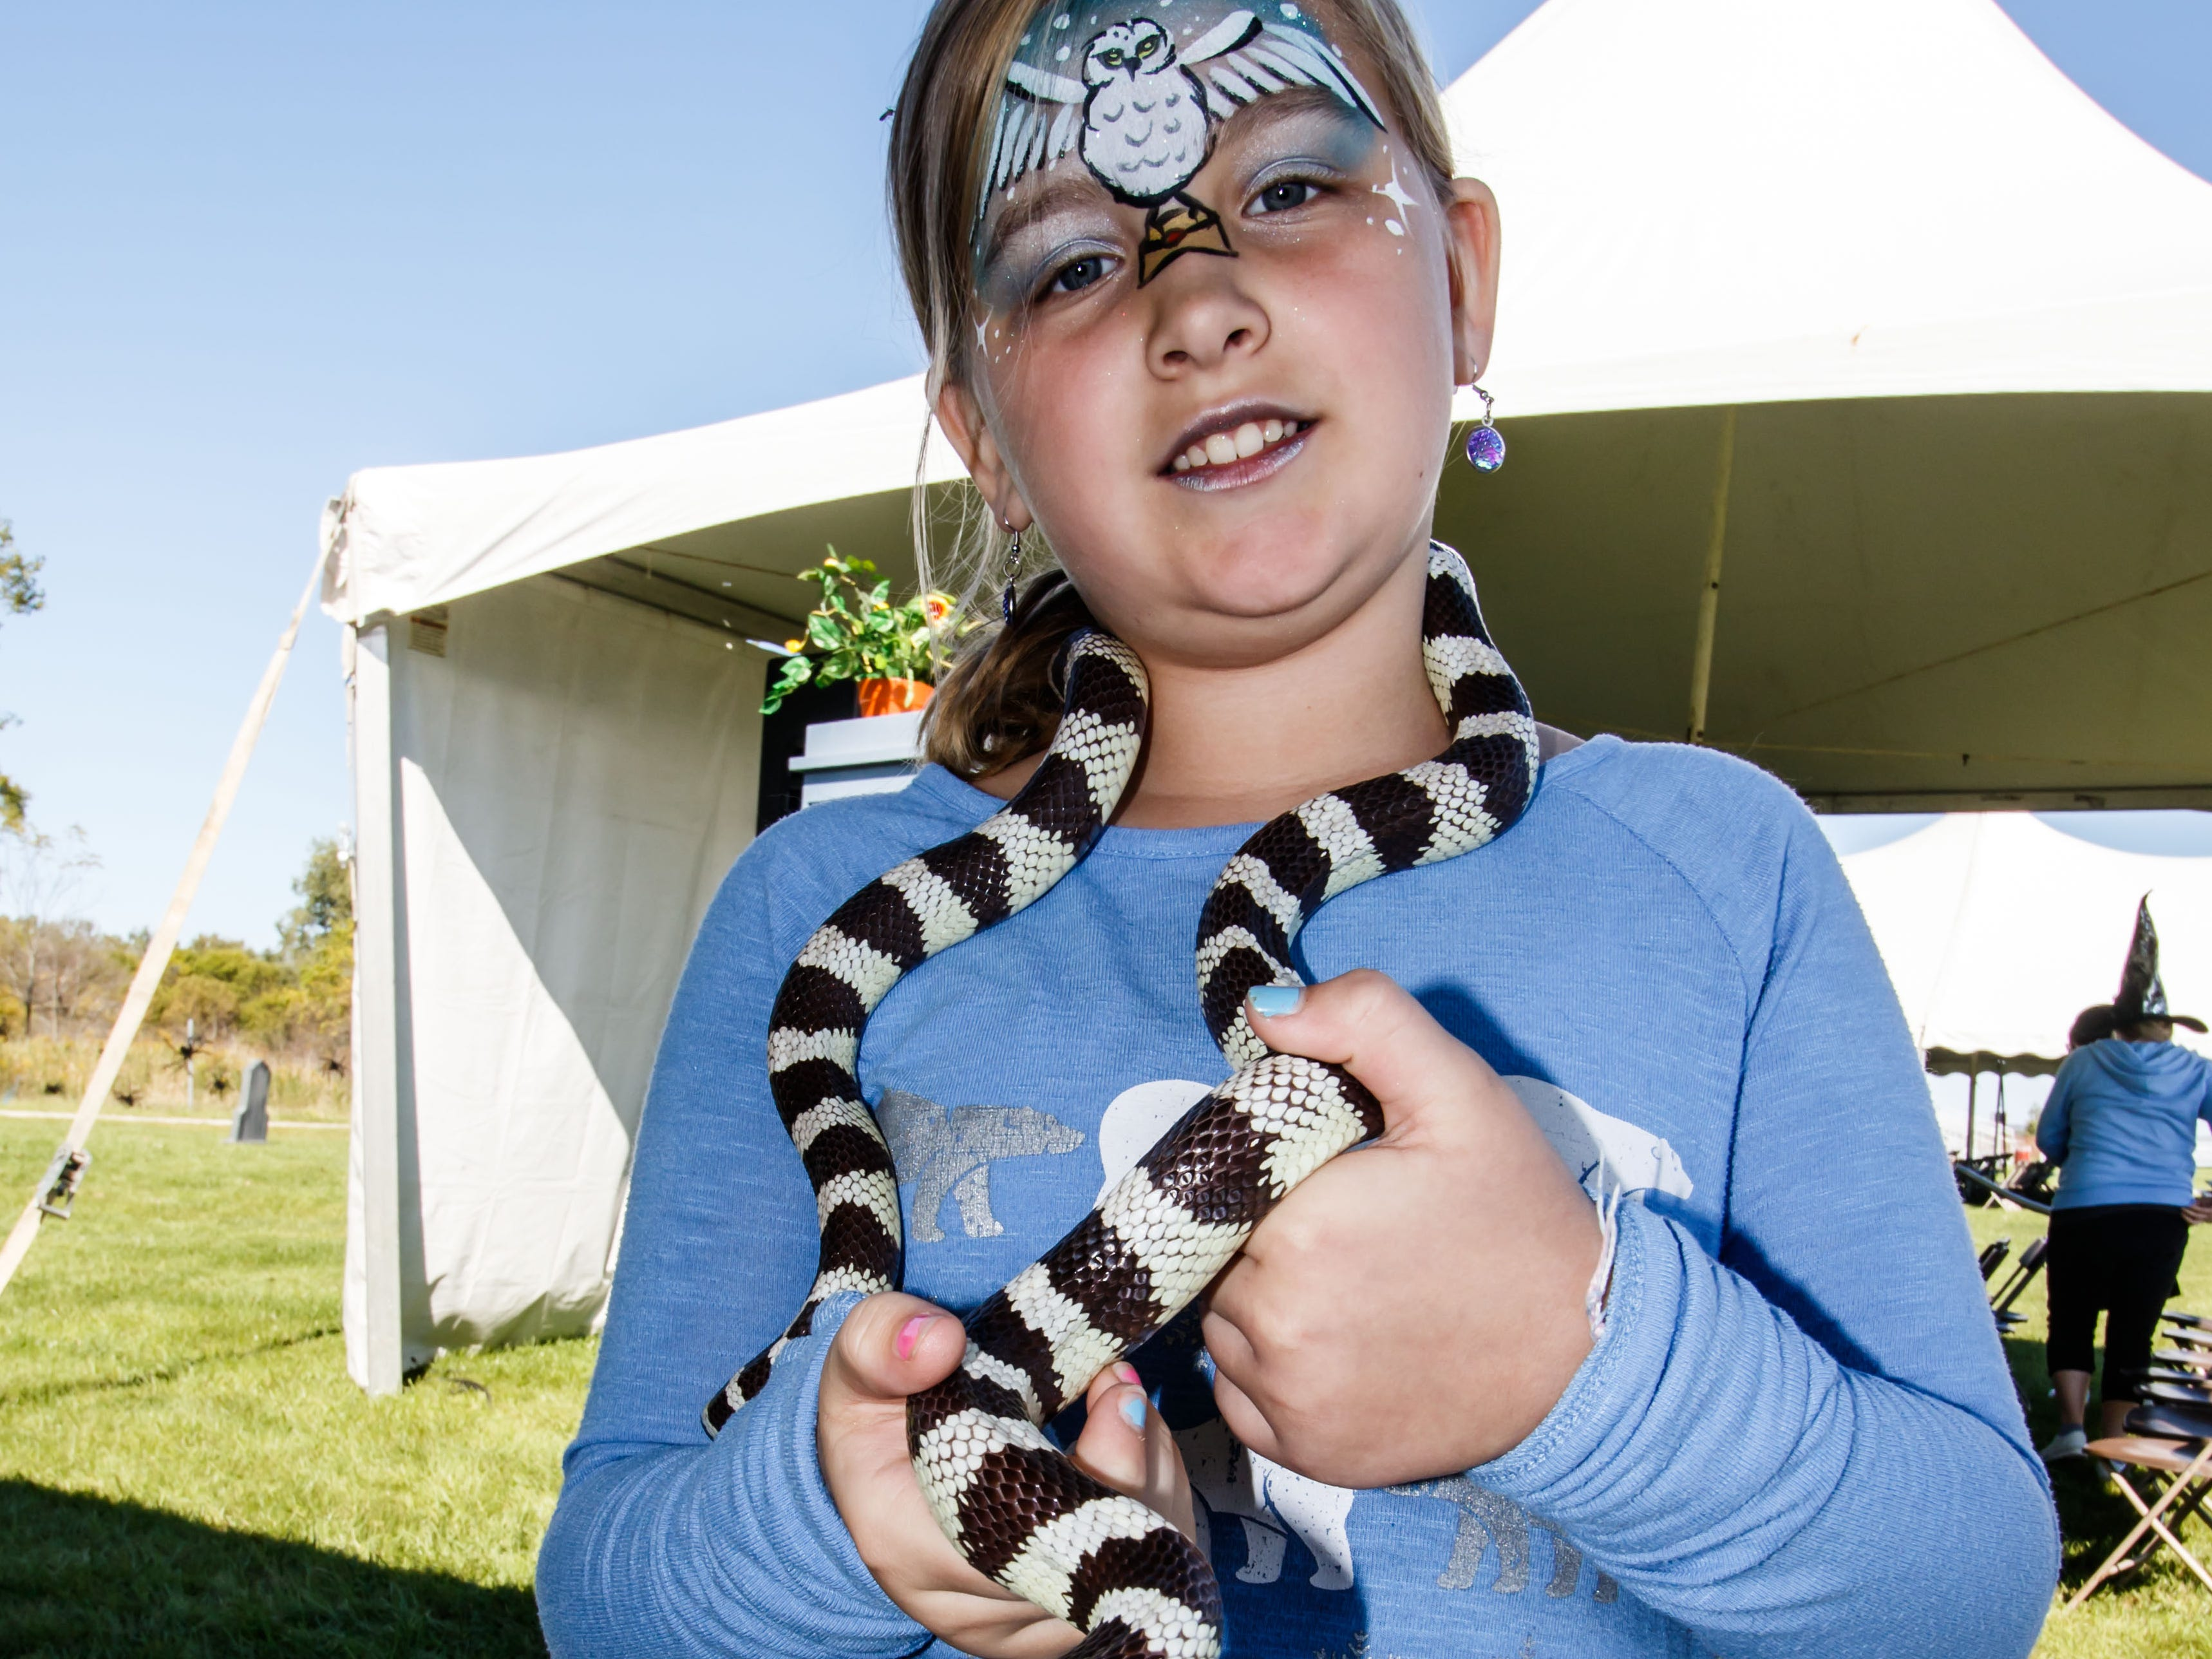 Lydia Templen, 10, of Dubuque, Iowa stops by the Snake Encounter booth during the Midwest Magic Fest at the Waukesha Expo Center on Sunday, Sept. 23, 2018. The family friendly event featured one-of-a-kind entertainment, mythical creatures, games, crafts, vendors, unique photo-ops, costume contests and much more.